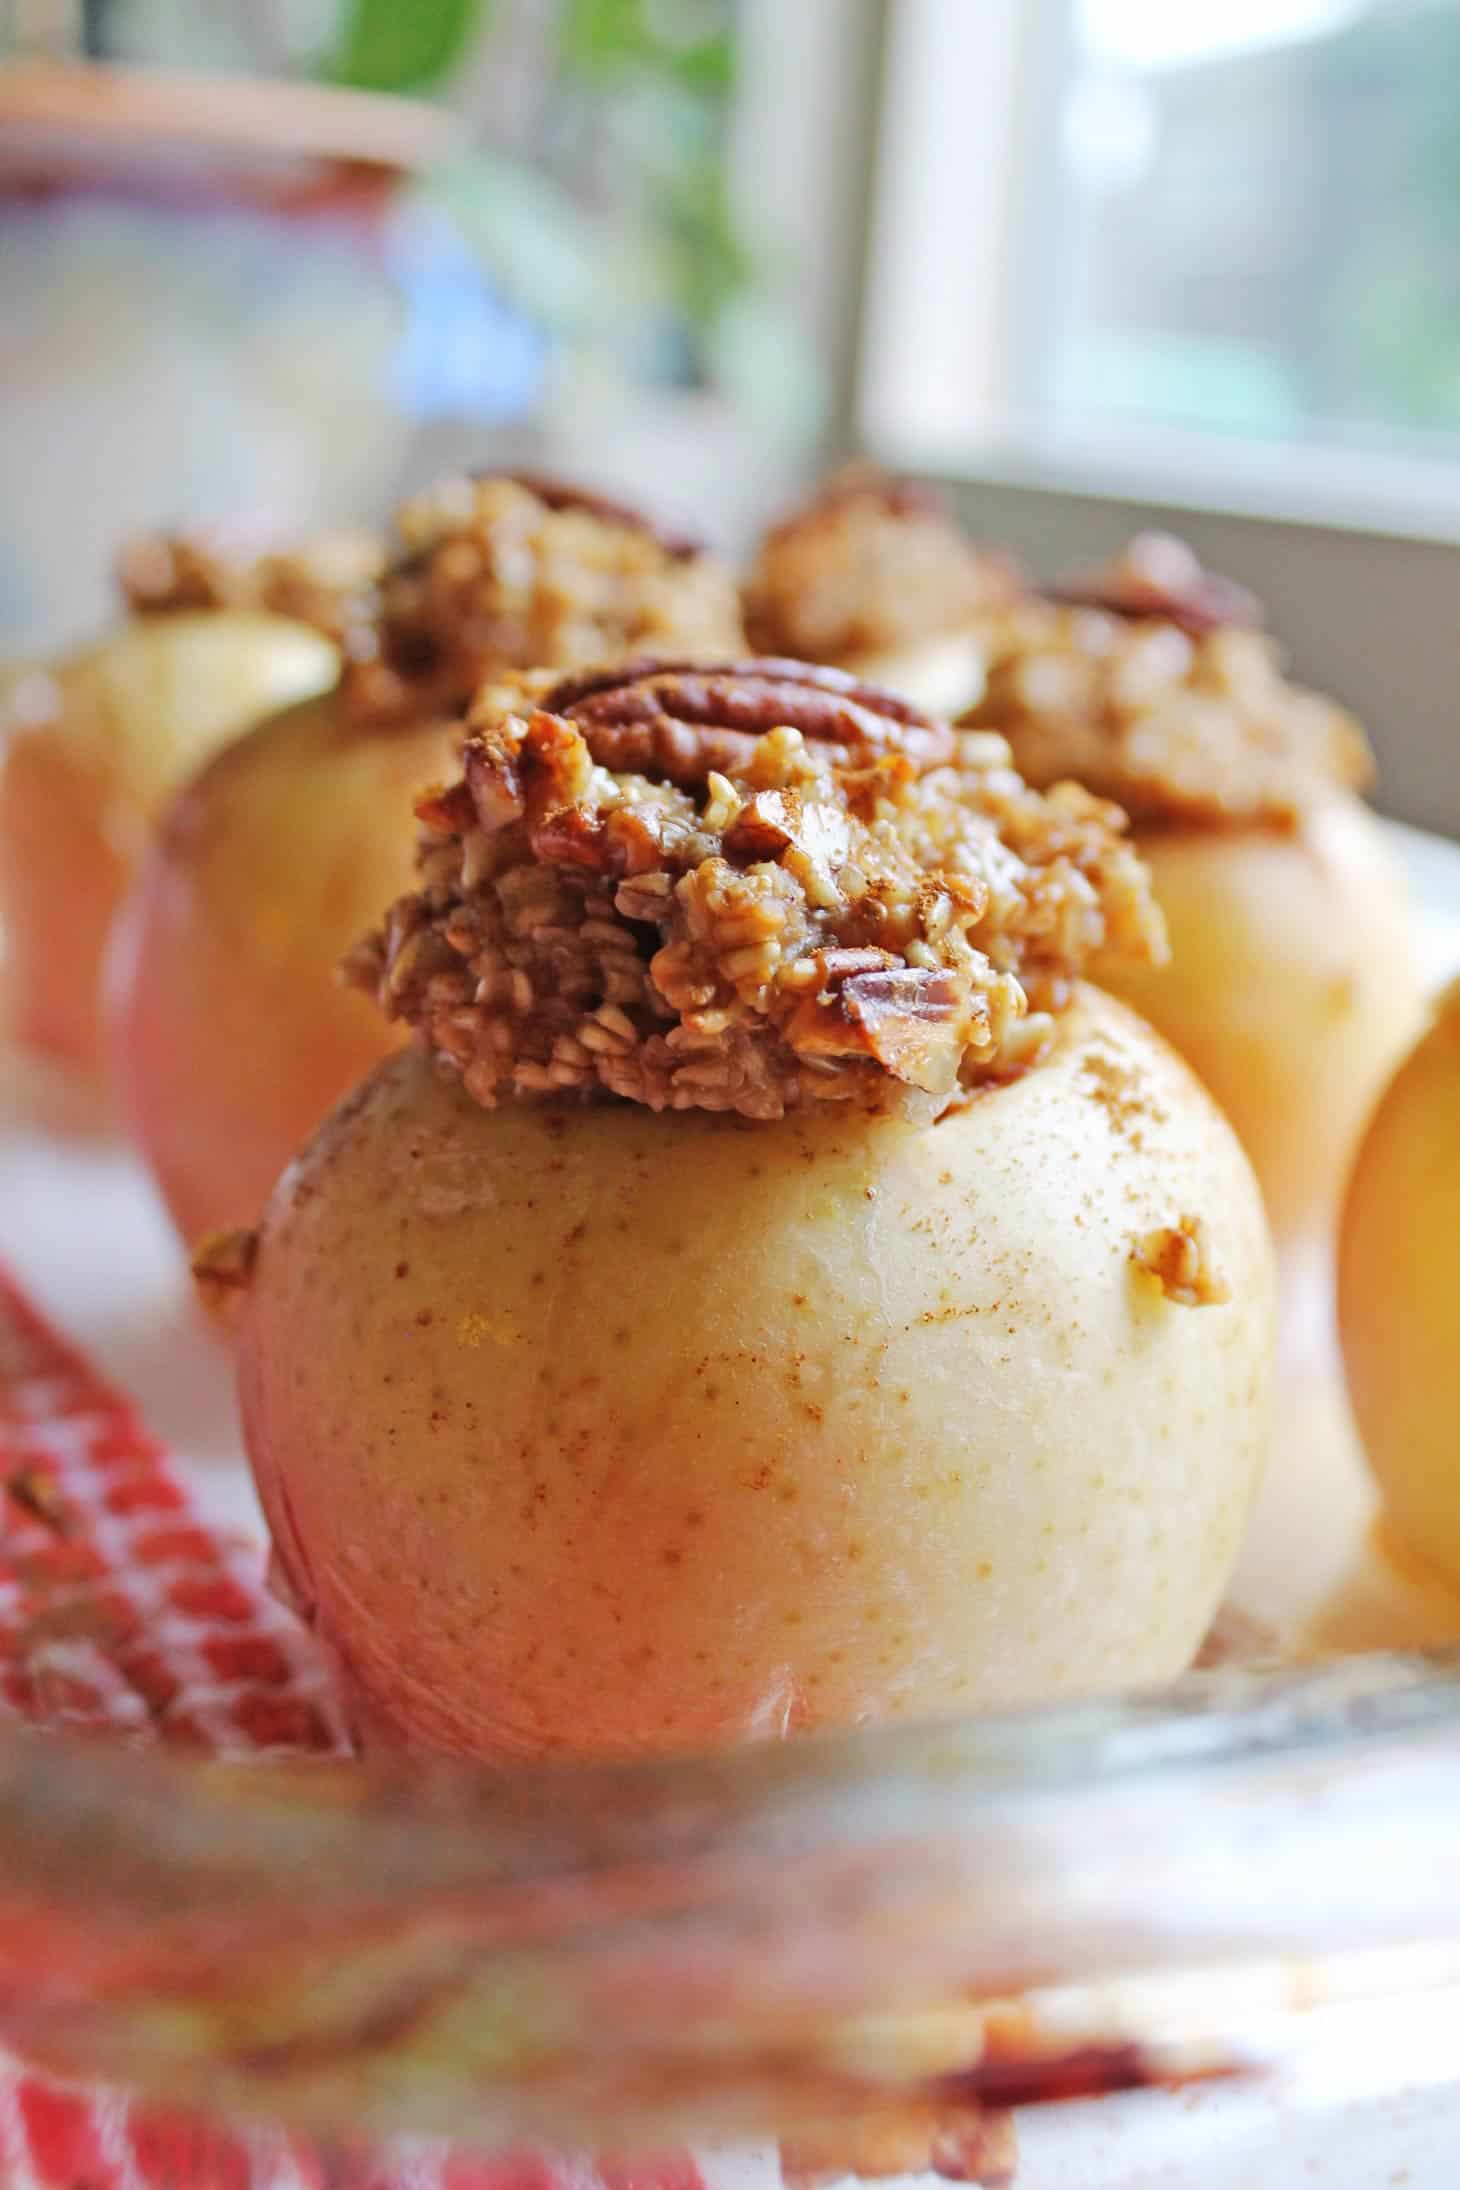 ... Maple pecan steel cut oatmeal is stuffed into apples, then baked and